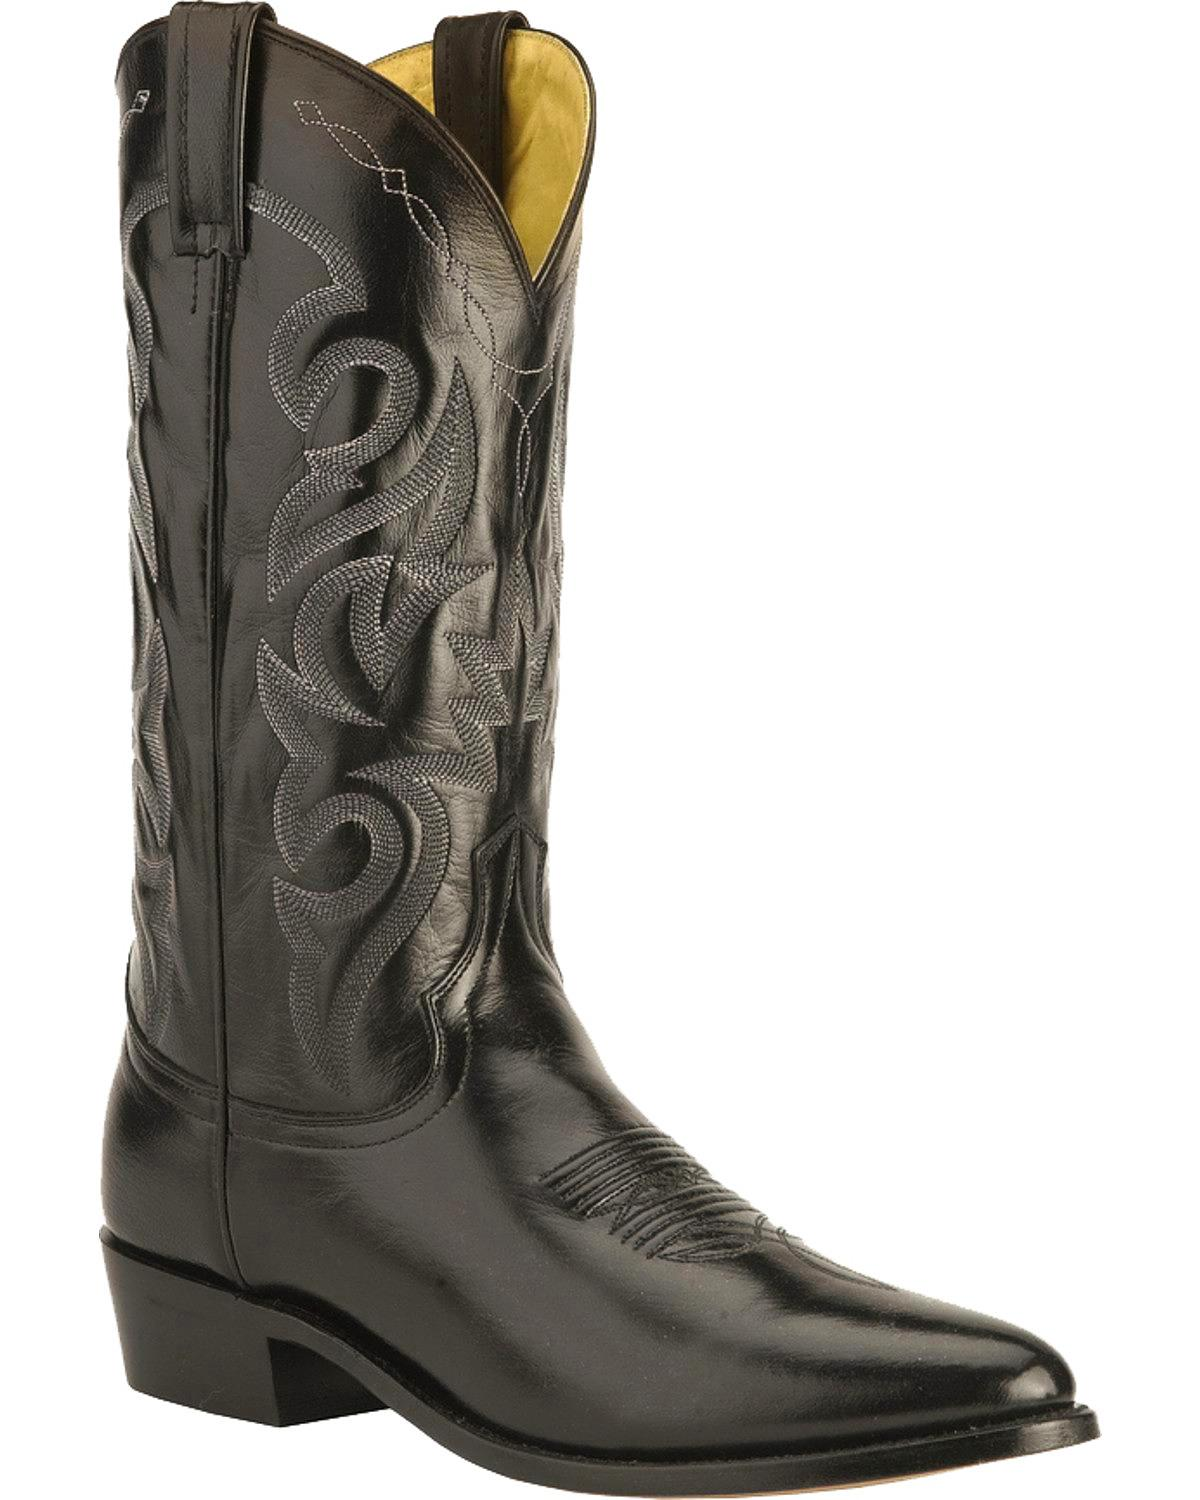 With over 3, styles and 2,, pairs of men's cowboy boots to pull from, bnightf.ml has one of the largest selections of western and cowboy boots, anywhere.